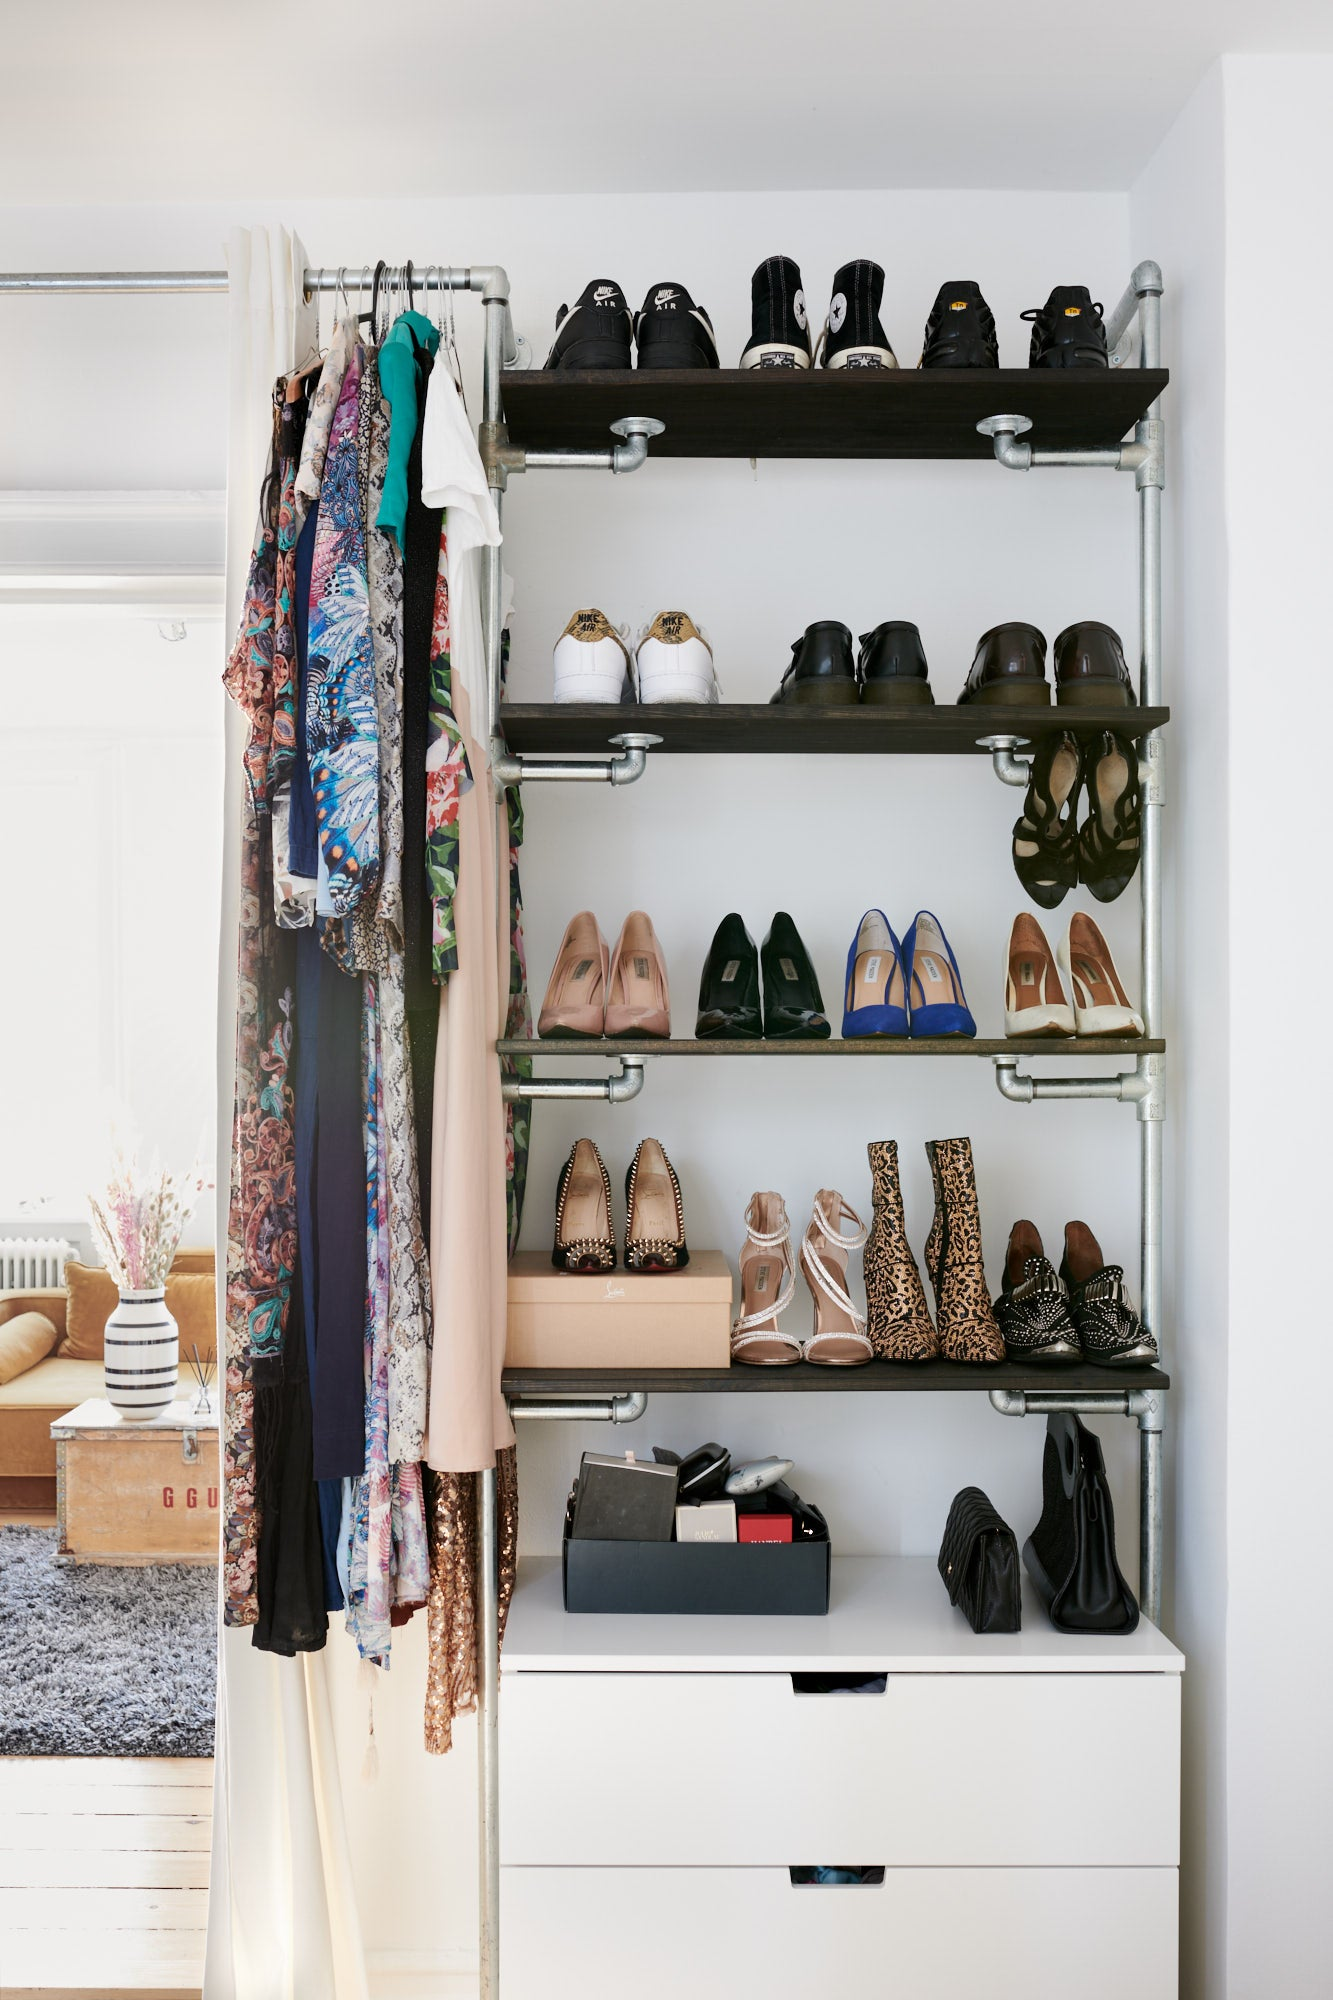 Rikke G - shoeshelf - Rackbuddy